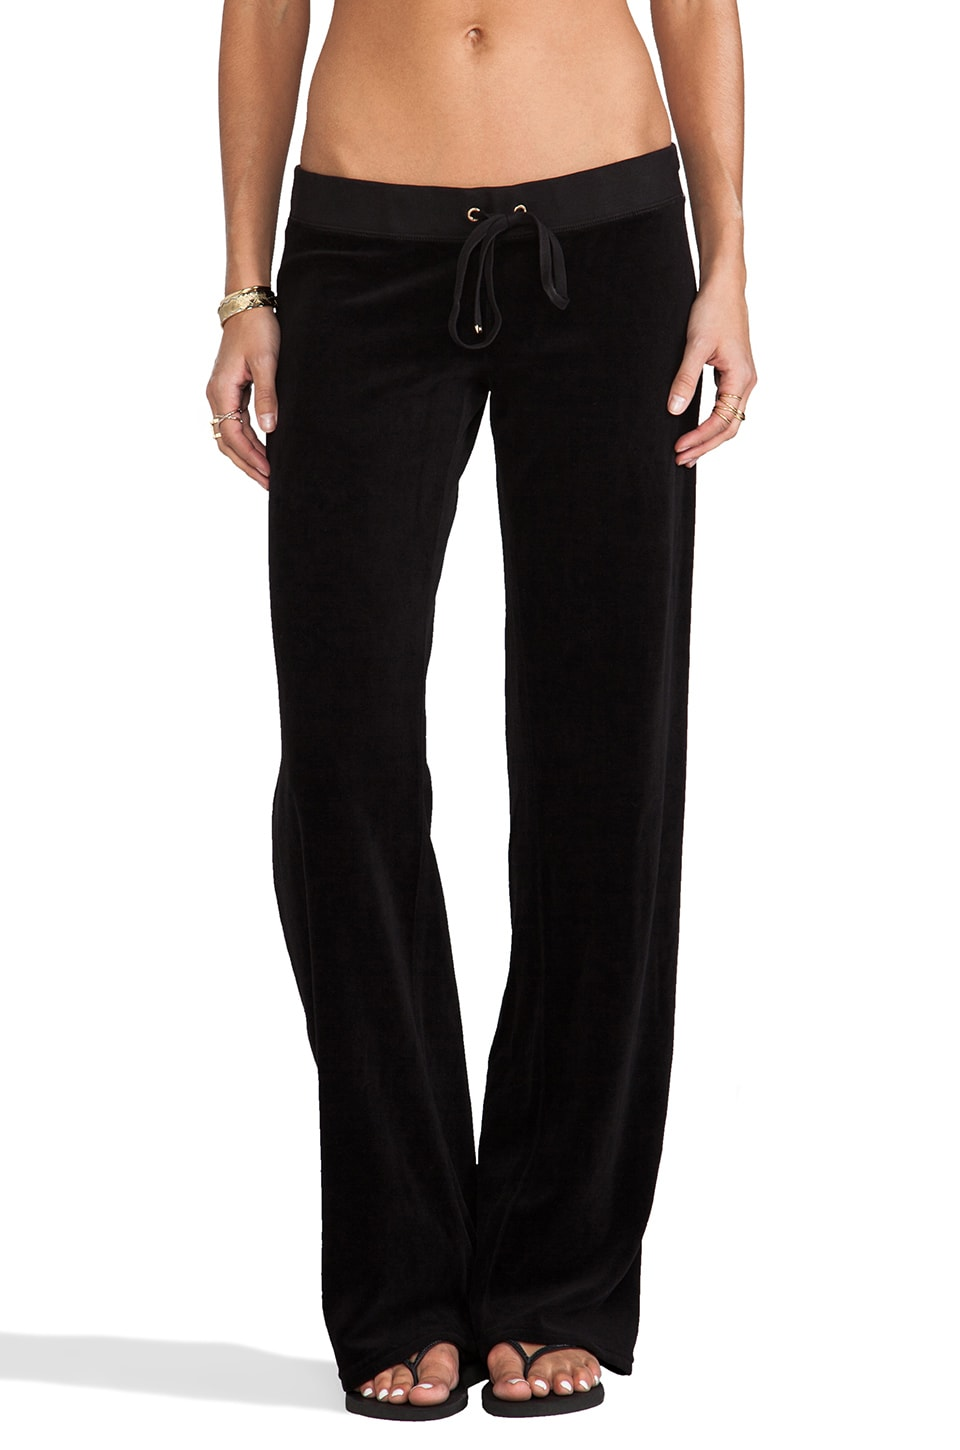 Juicy Couture Classic Velour Original Leg Pant in Black